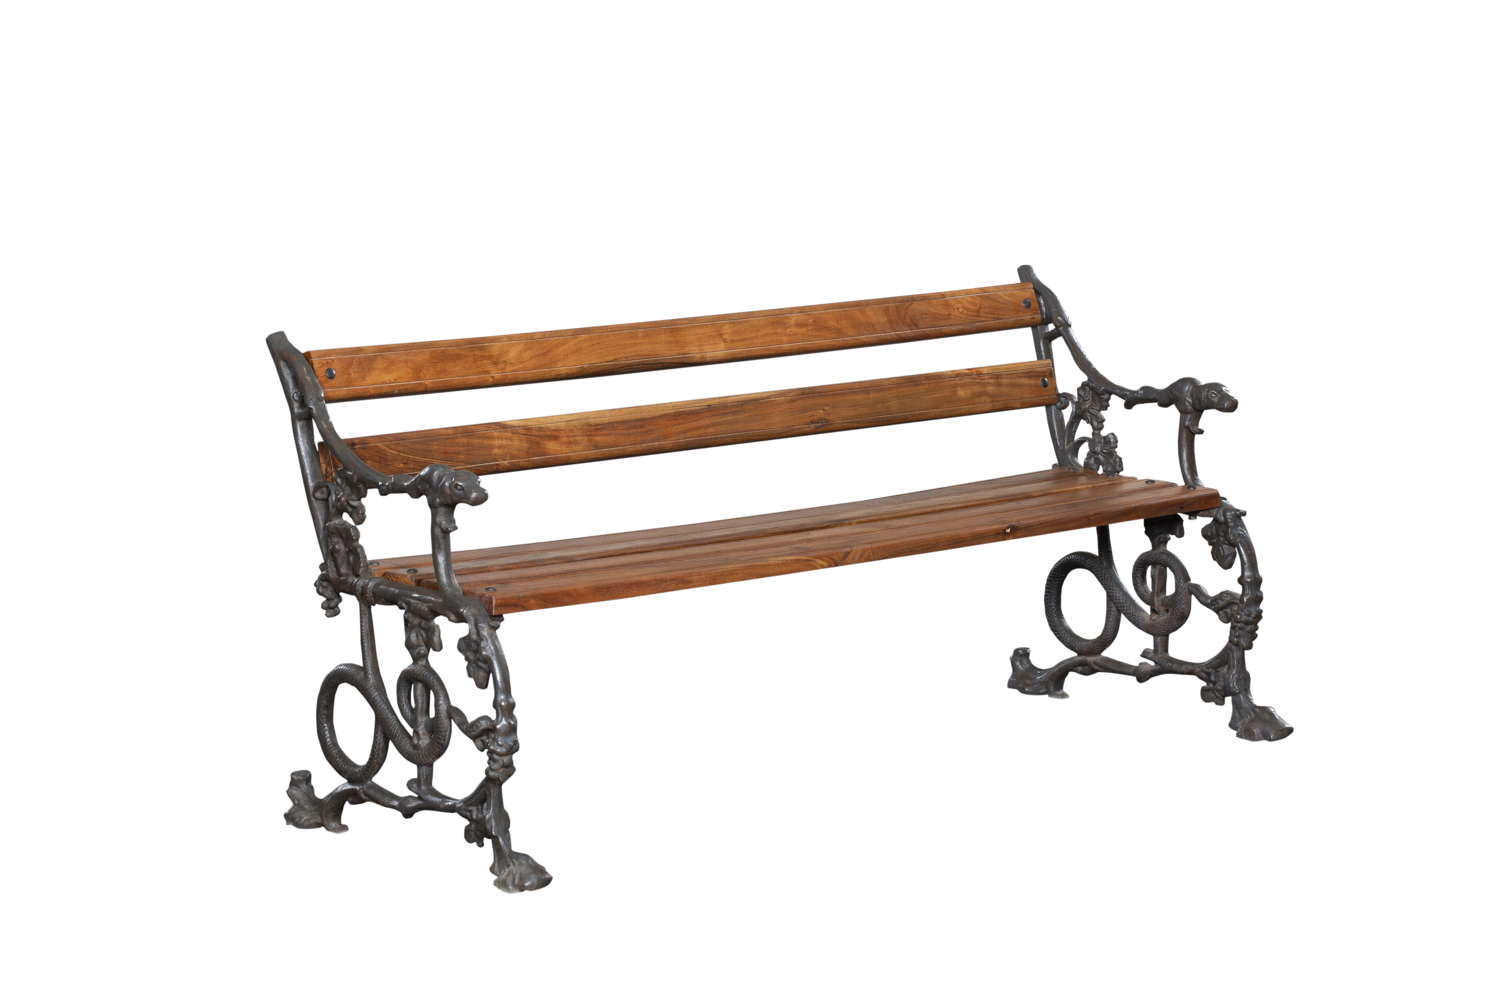 Victorian Style (Coalbrookdale) Cast Iron Dog & Serpentine Bench